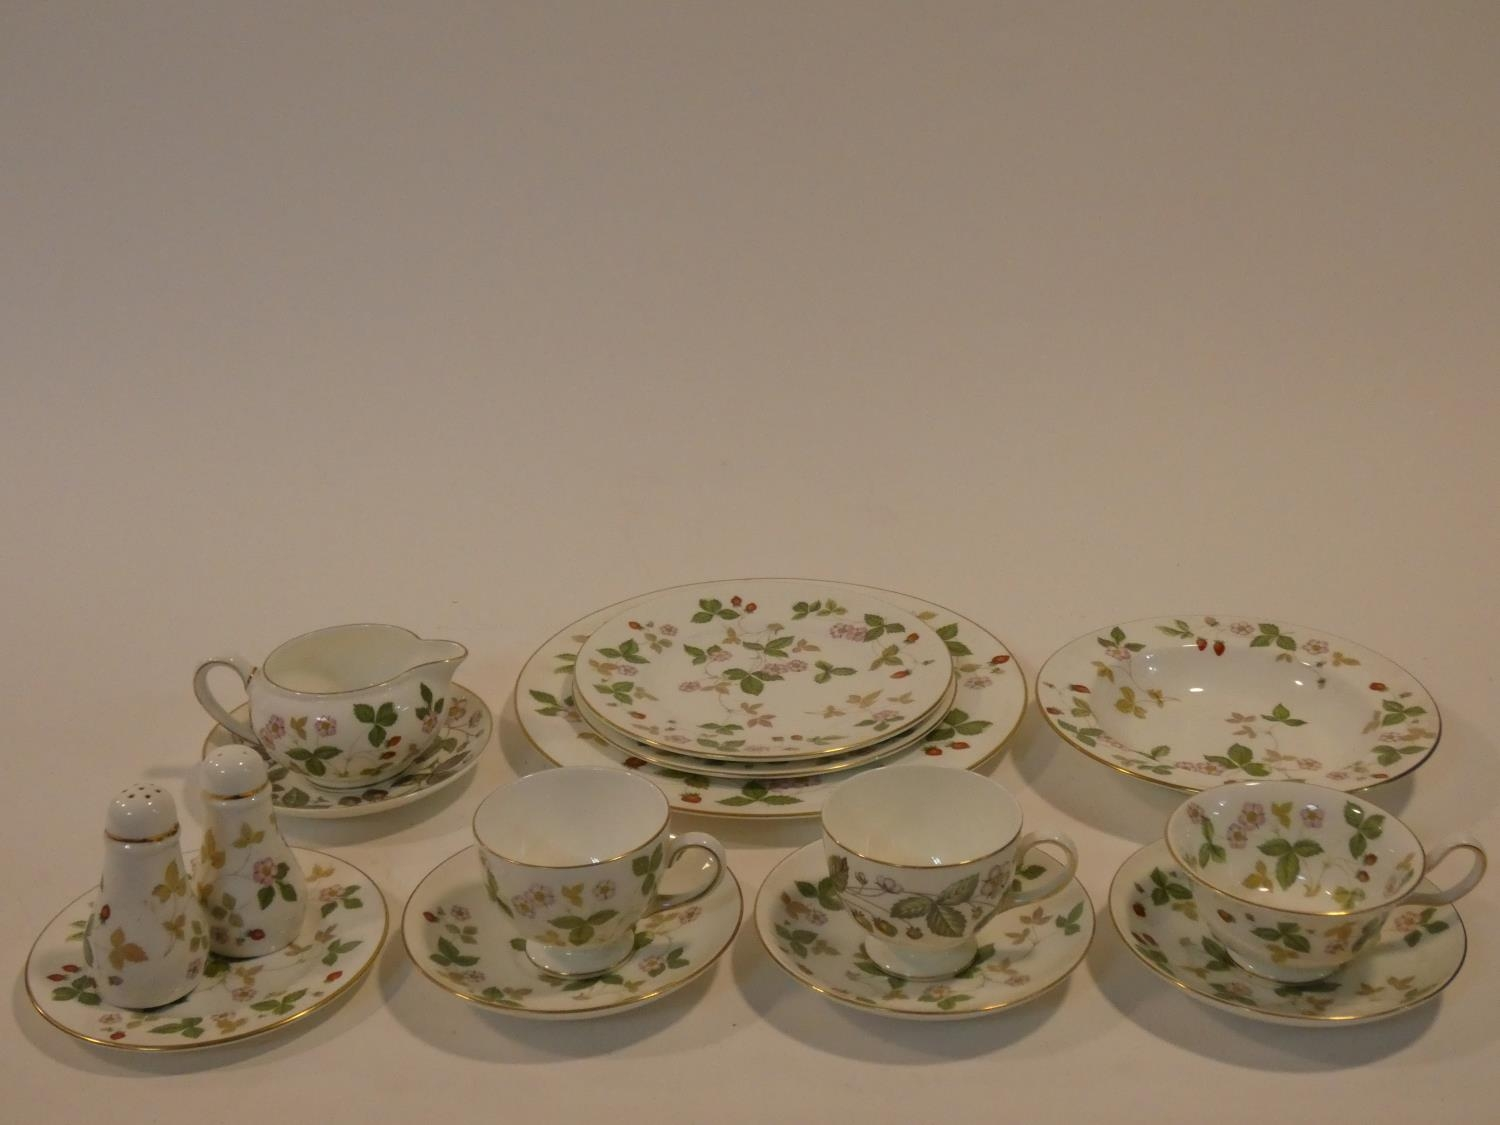 A Wedgwood Wild Strawberry pattern part tea service. Including three cups and saucers, salt and